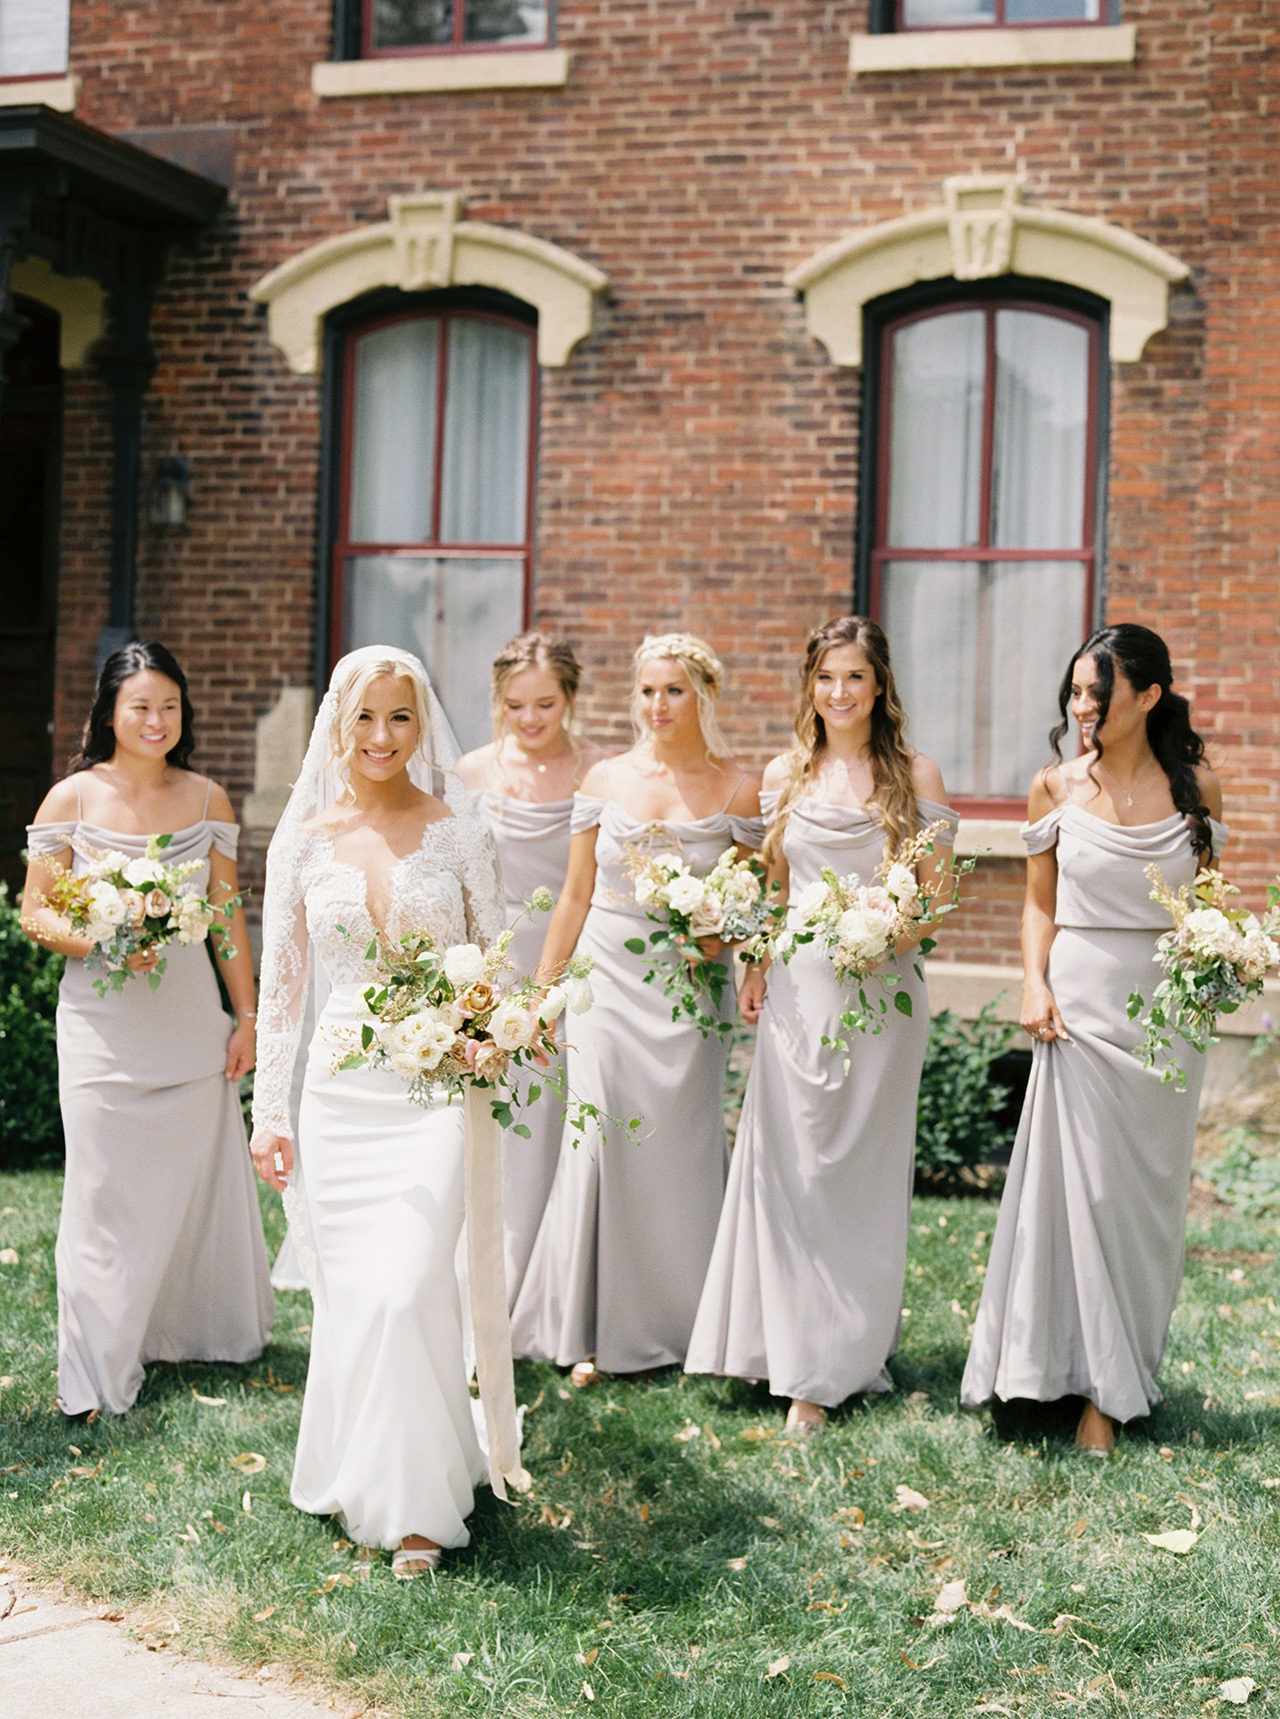 bride bridesmaids outdoors brick building